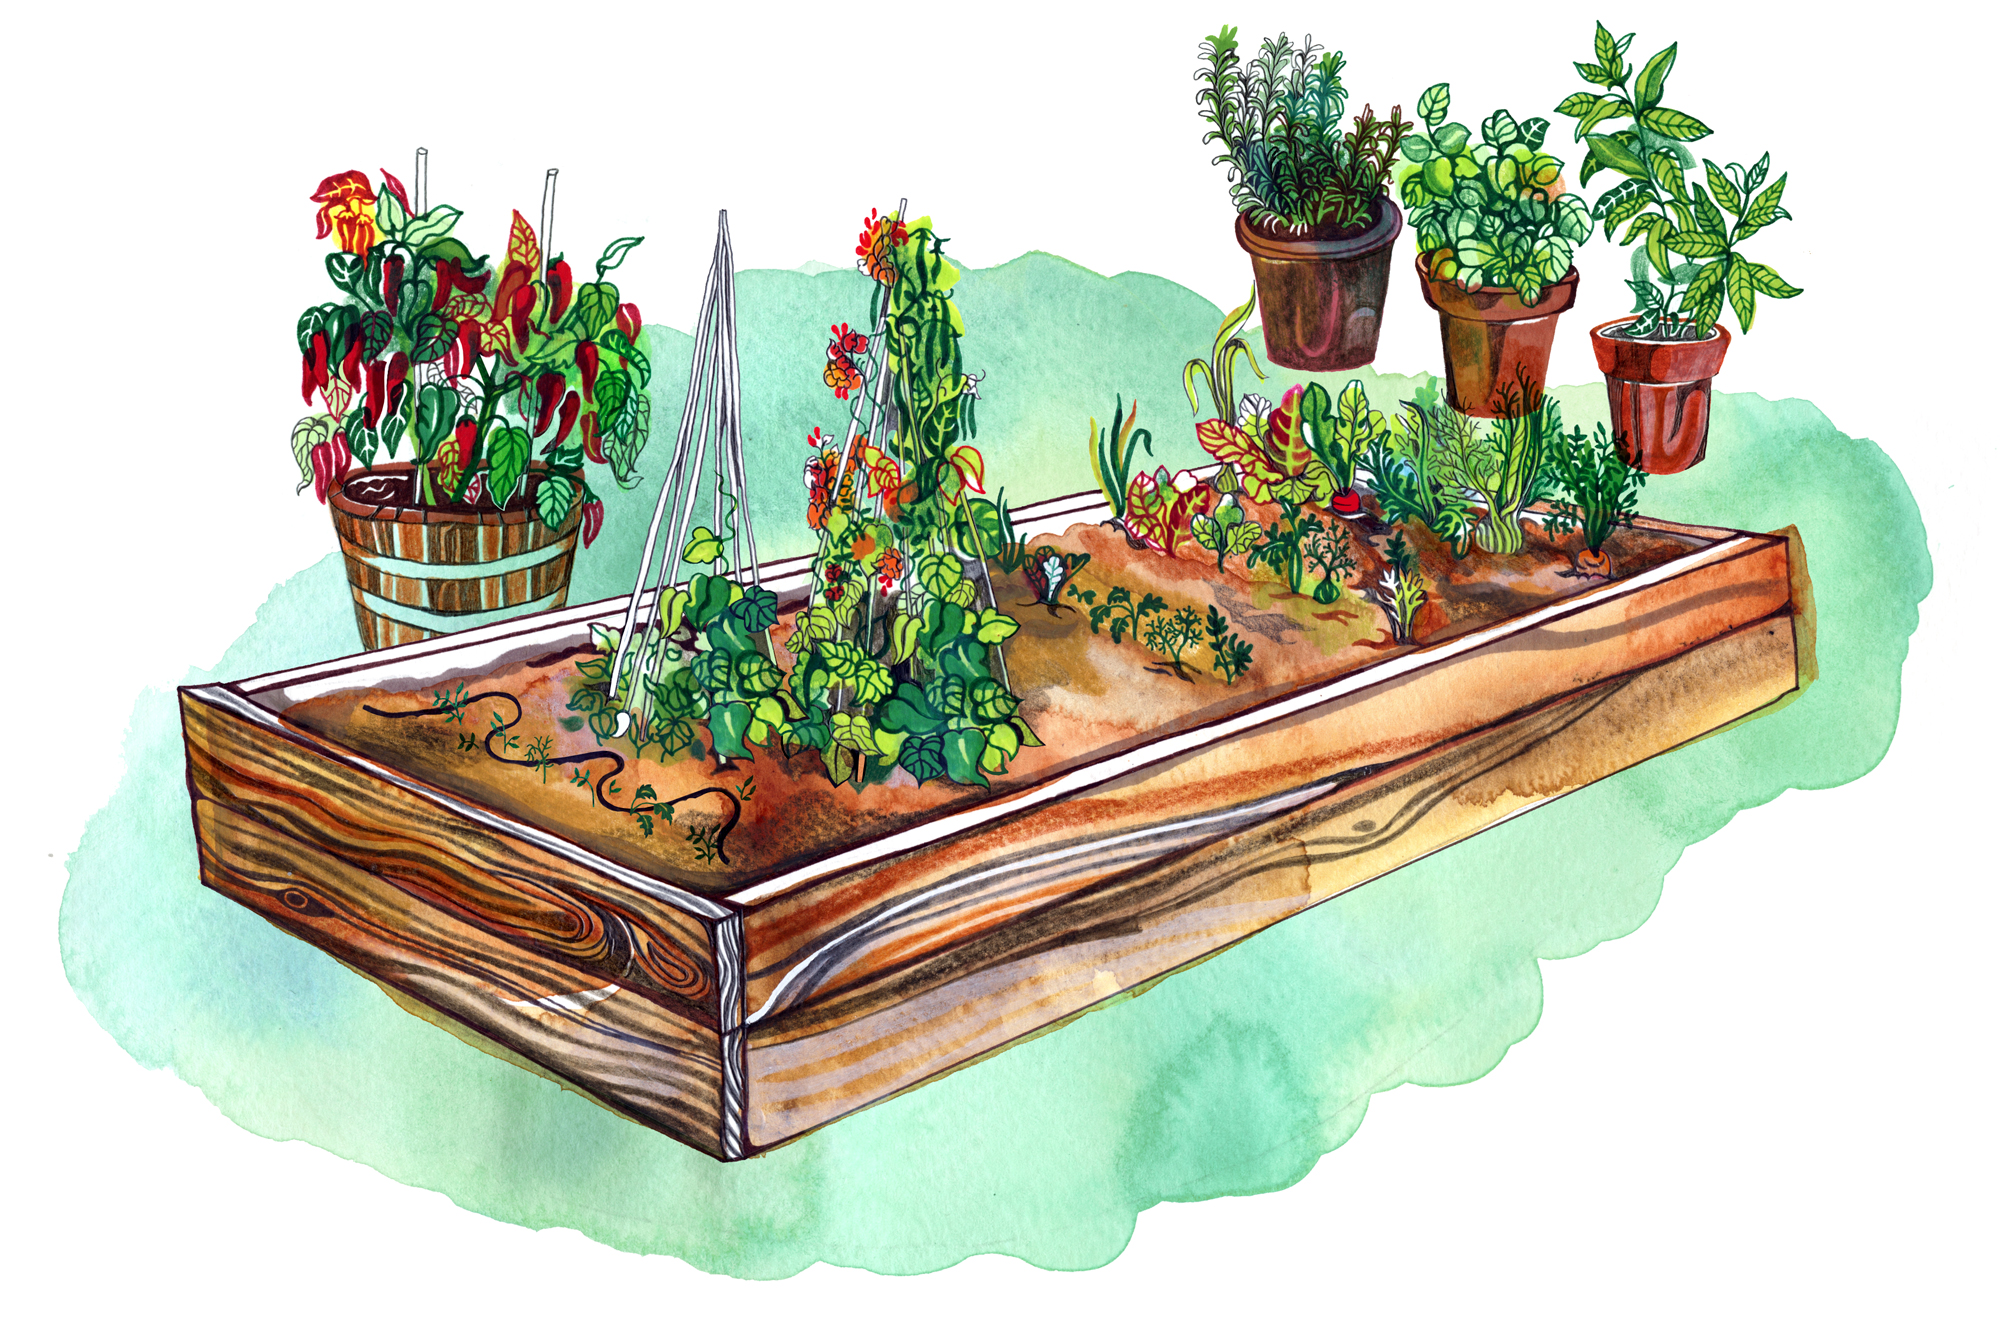 Culinary Garden Illustration